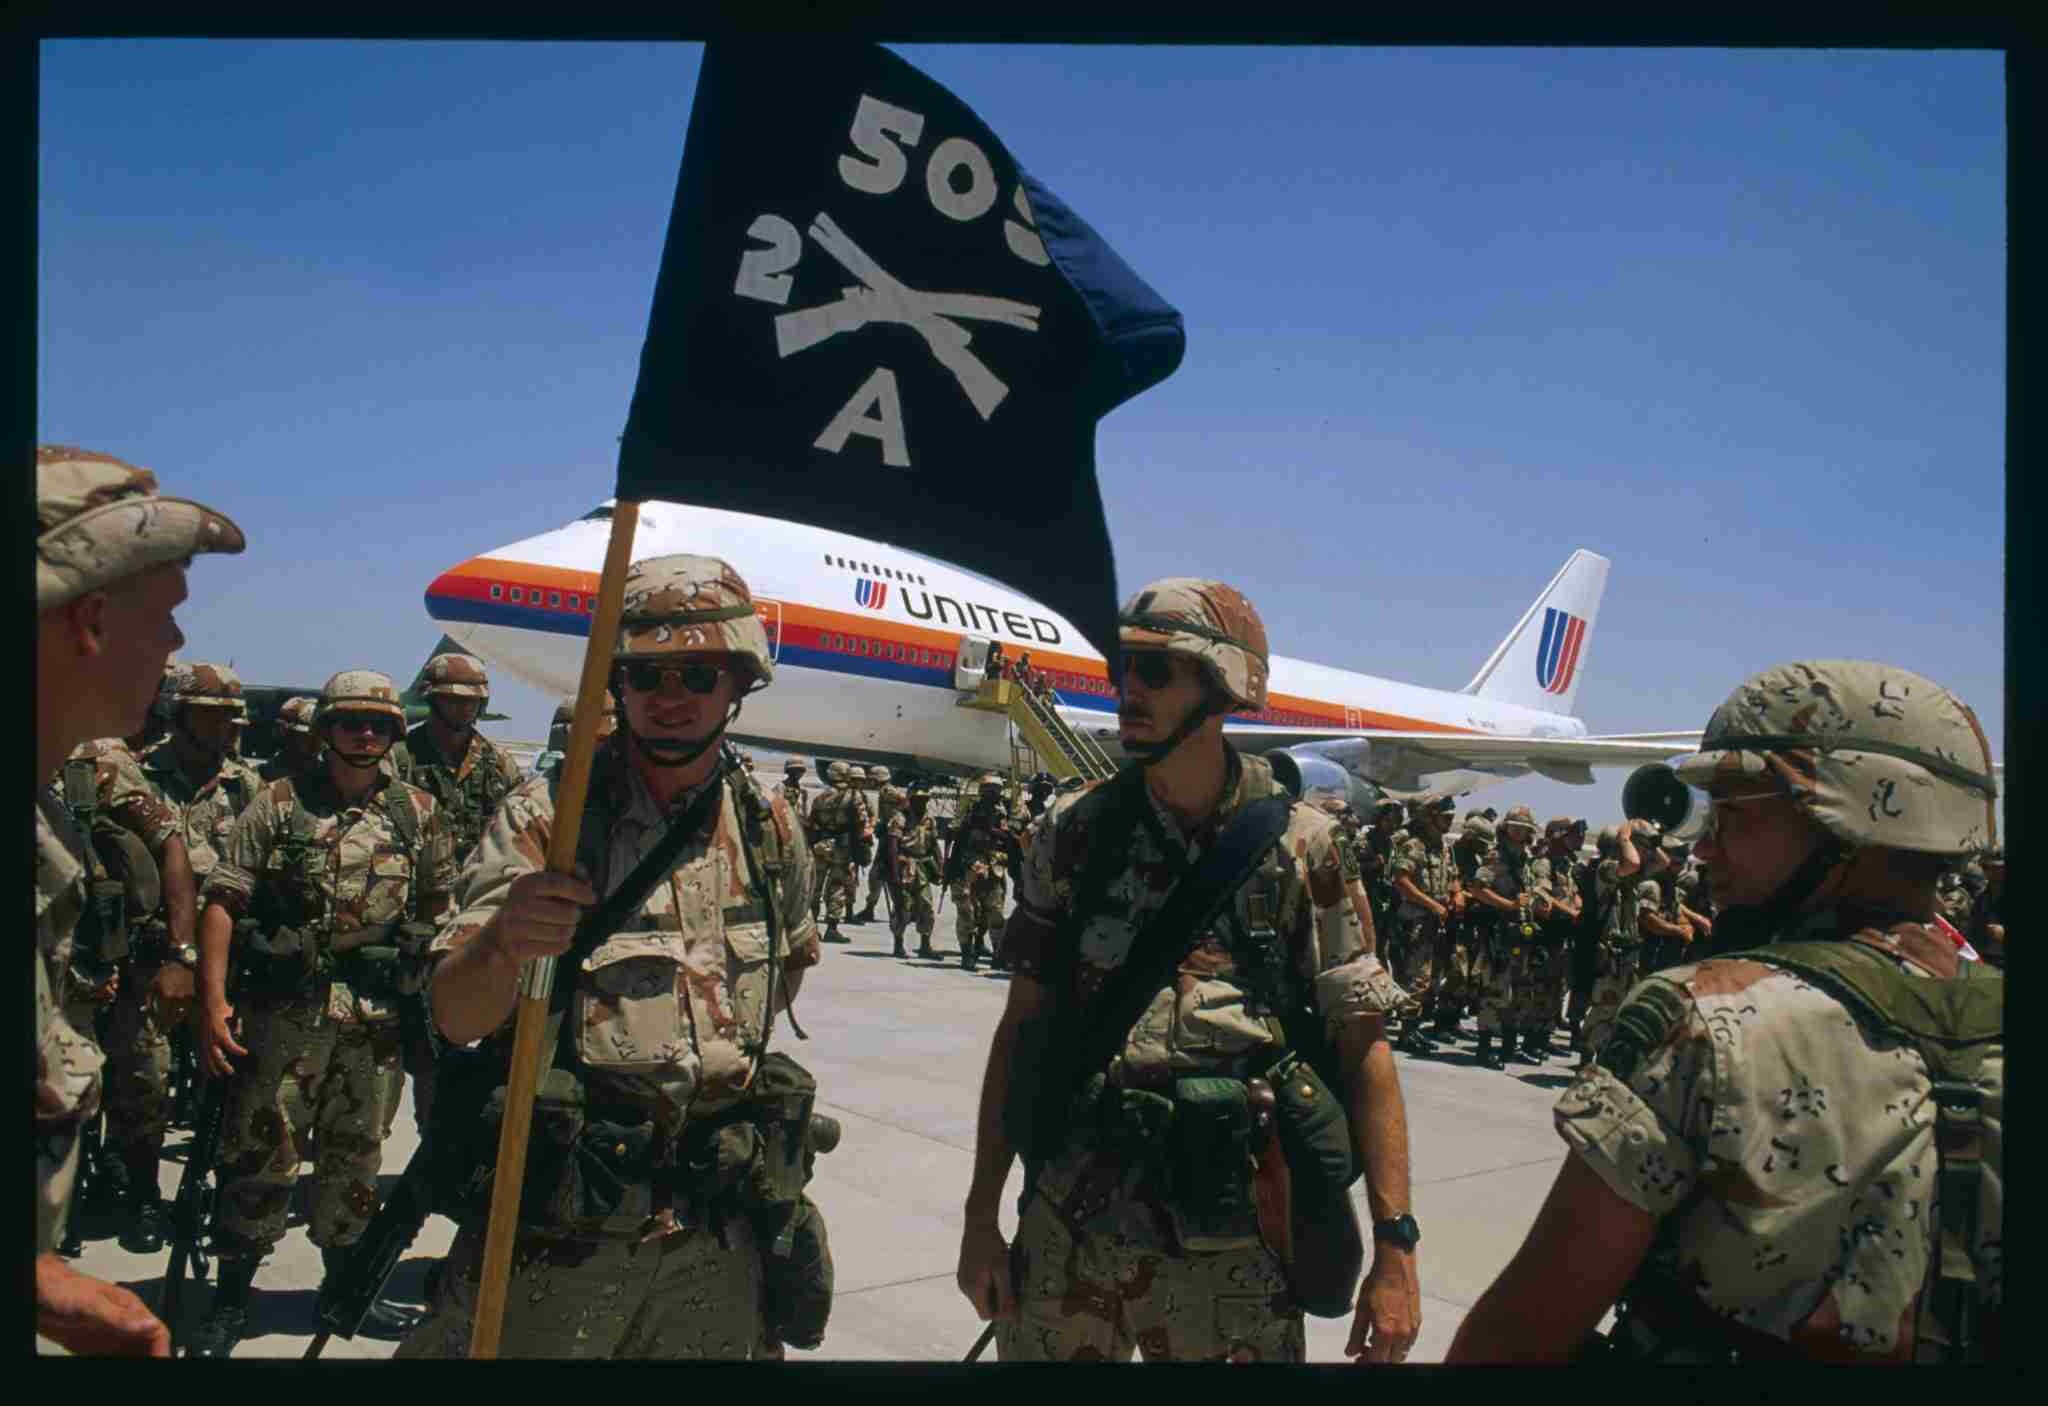 Deployment of American troops sent to face the Iraqi threat. (Photo by Jacques Langevin/Sygma/Sygma via Getty Images)